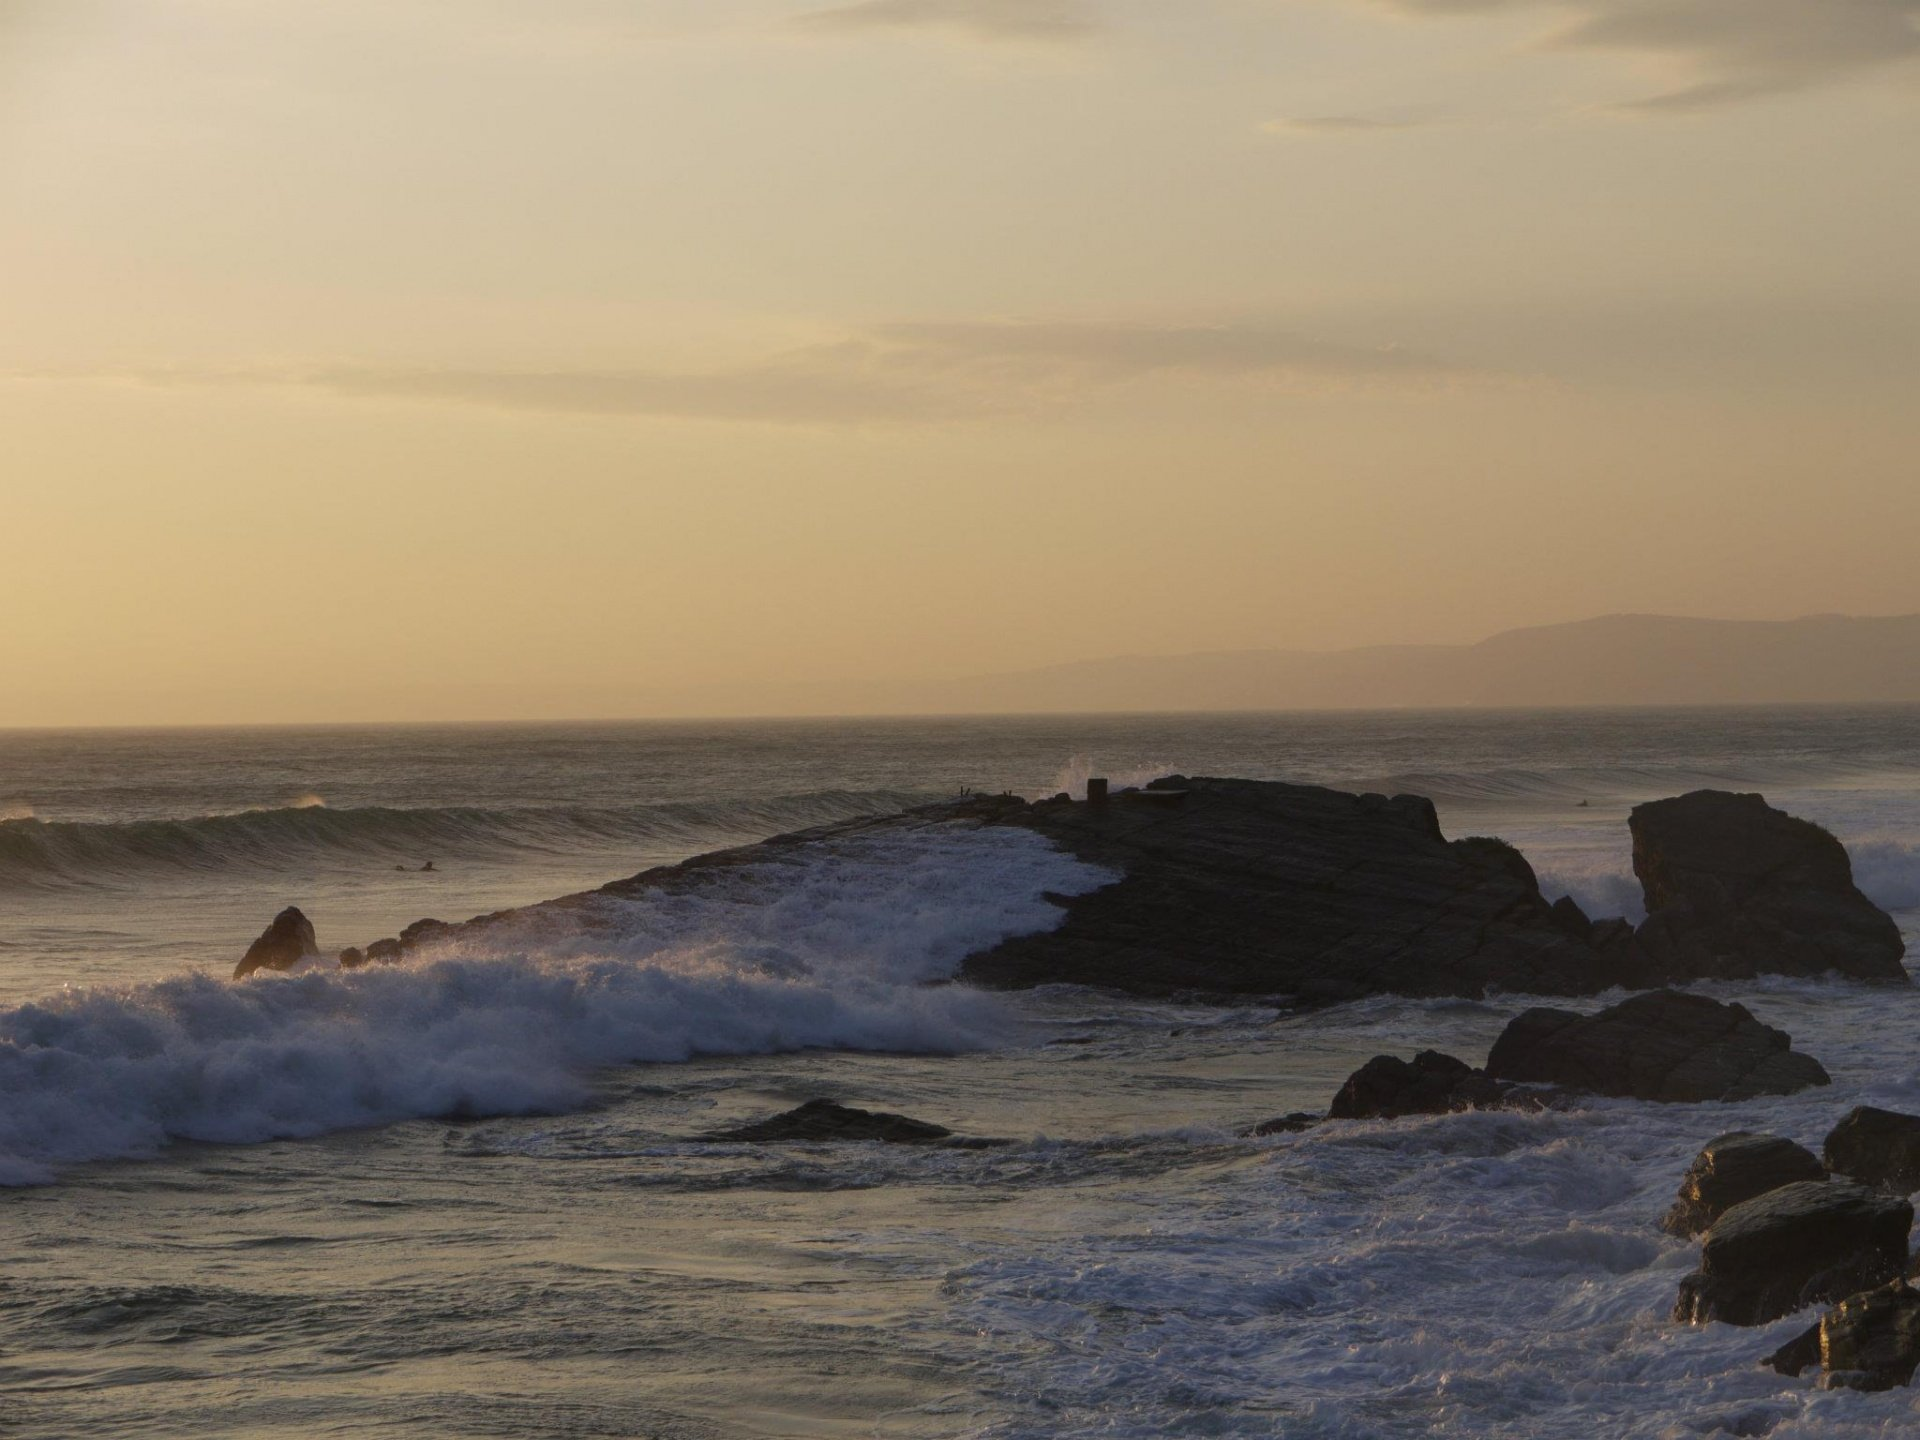 Ted Glasspool's photo of Whitsand Bay